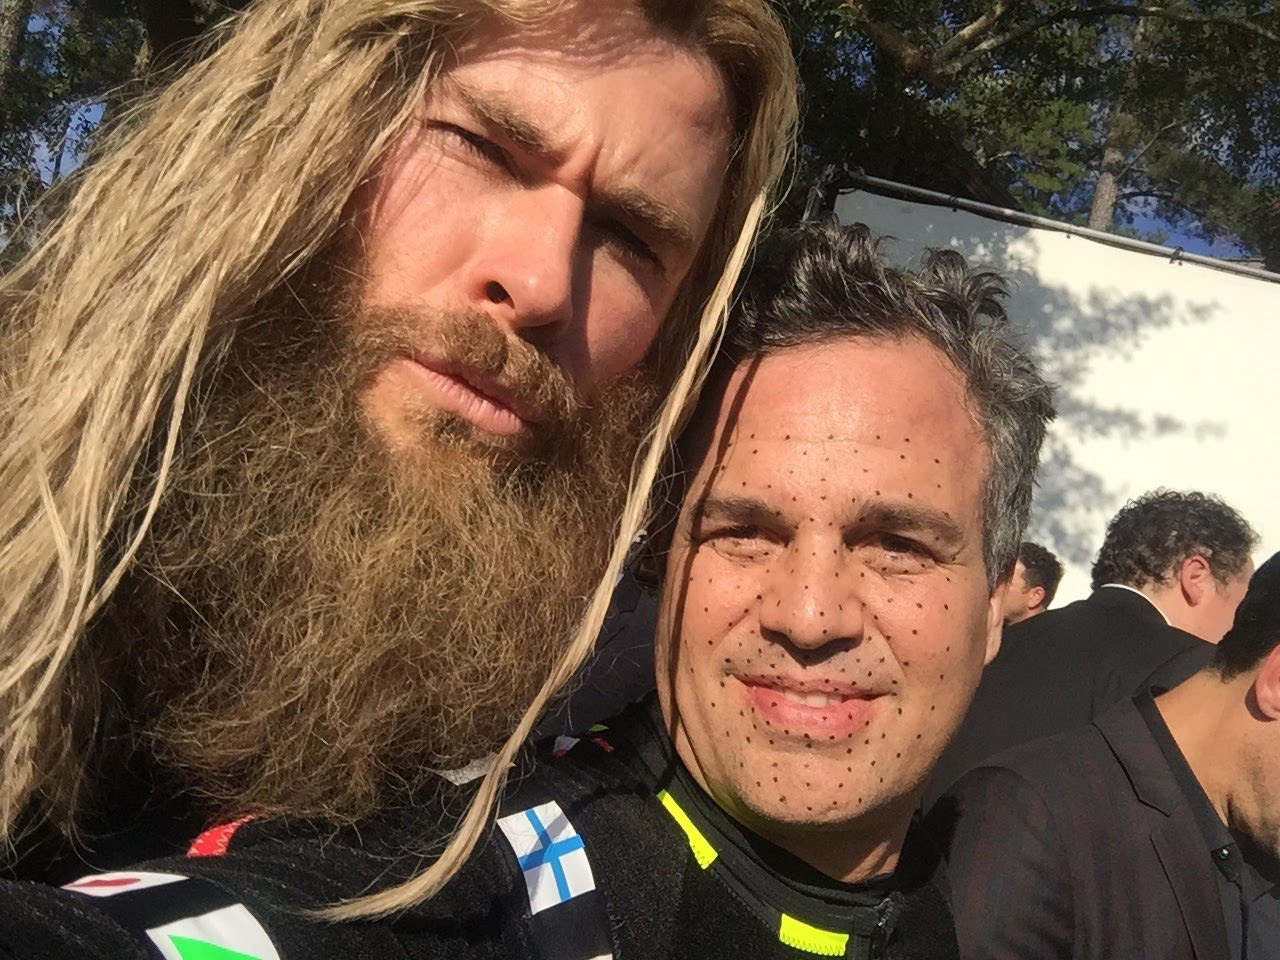 Mark Ruffalo wishes fellow Avenger Chris Hemsworth a happy birthday with behind the scenes photos